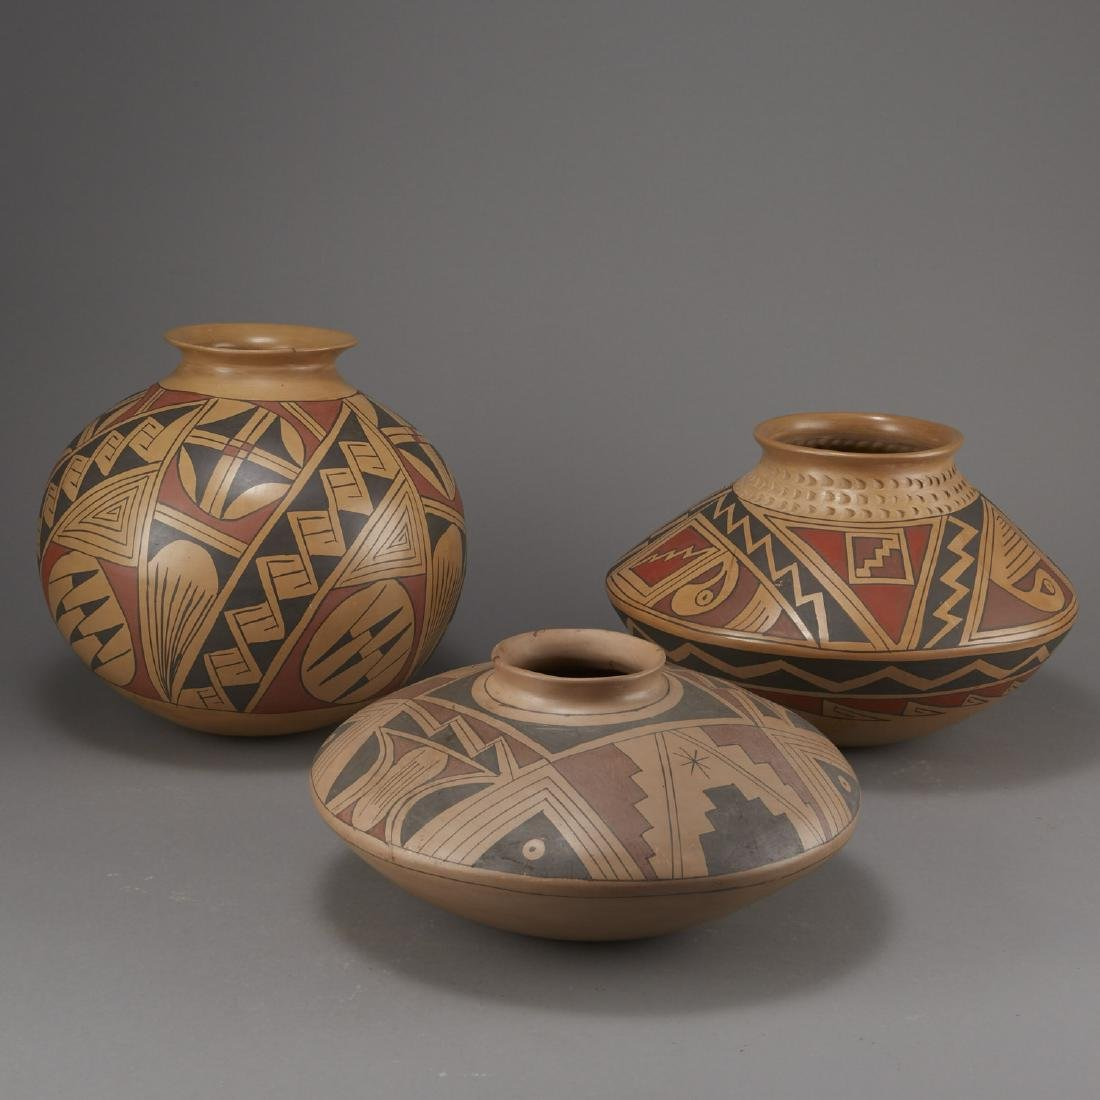 Group of 3 Large Polychrome Pottery Jars